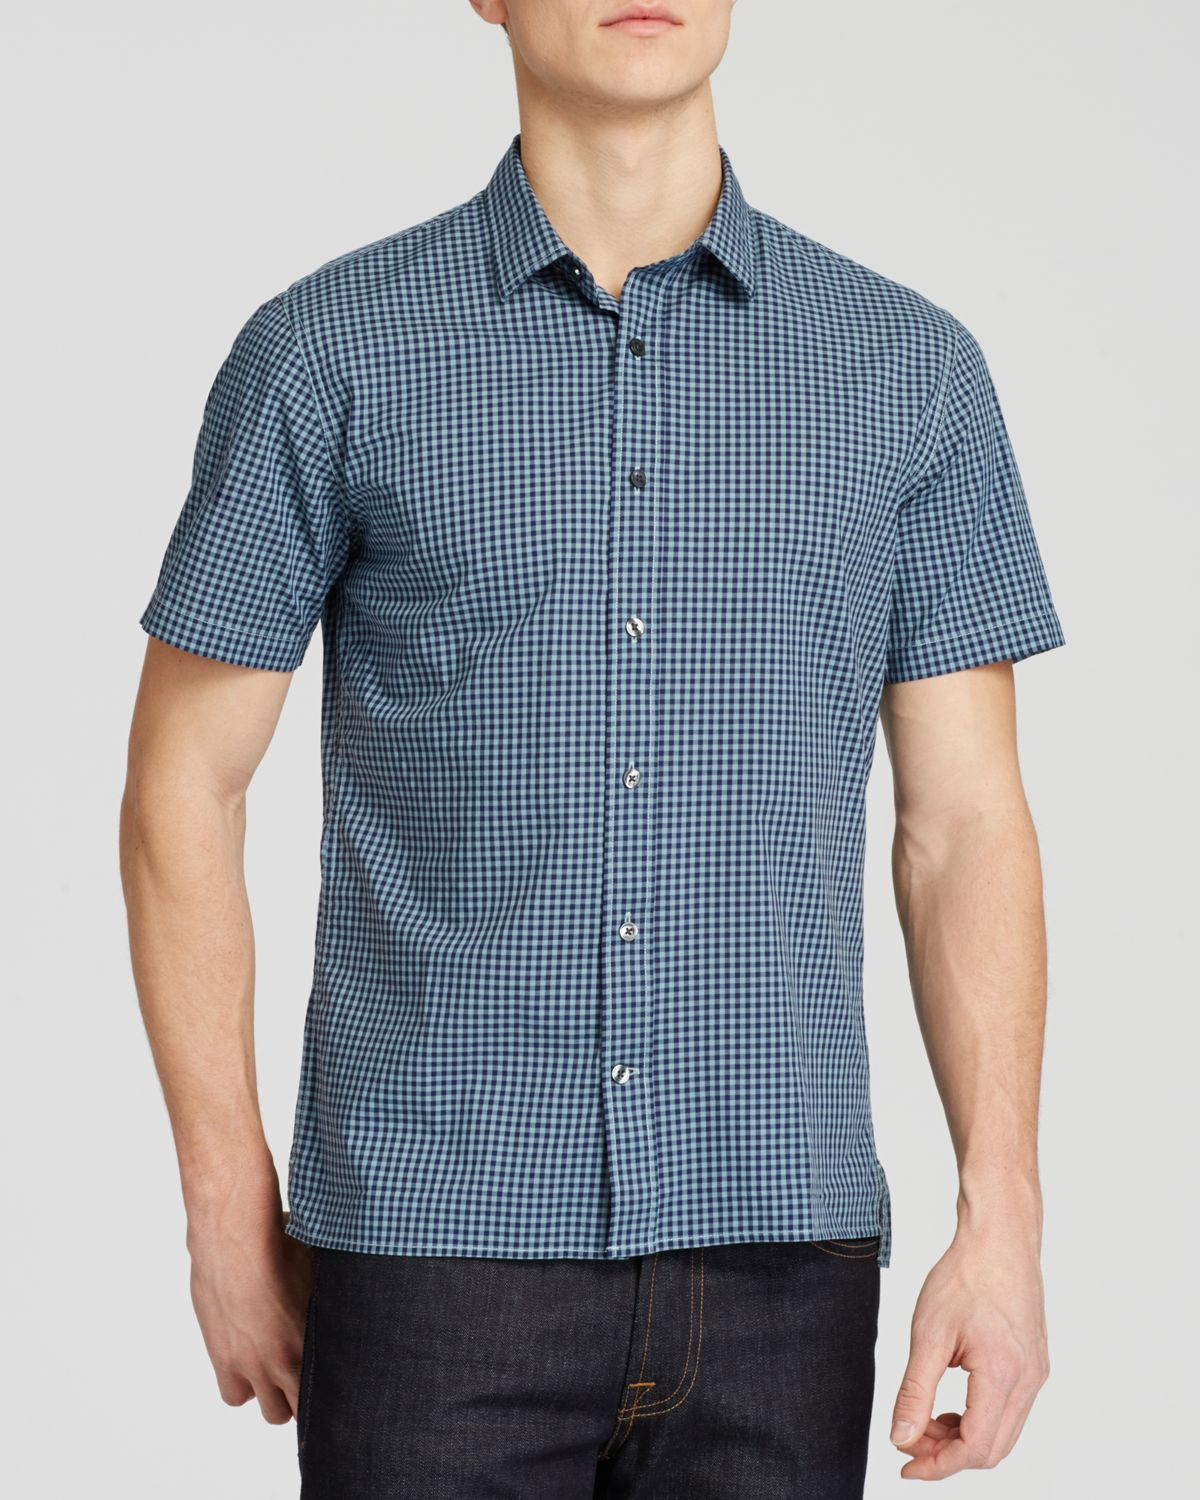 Vince Gingham Check Short Sleeve Button Down Shirt In Blue